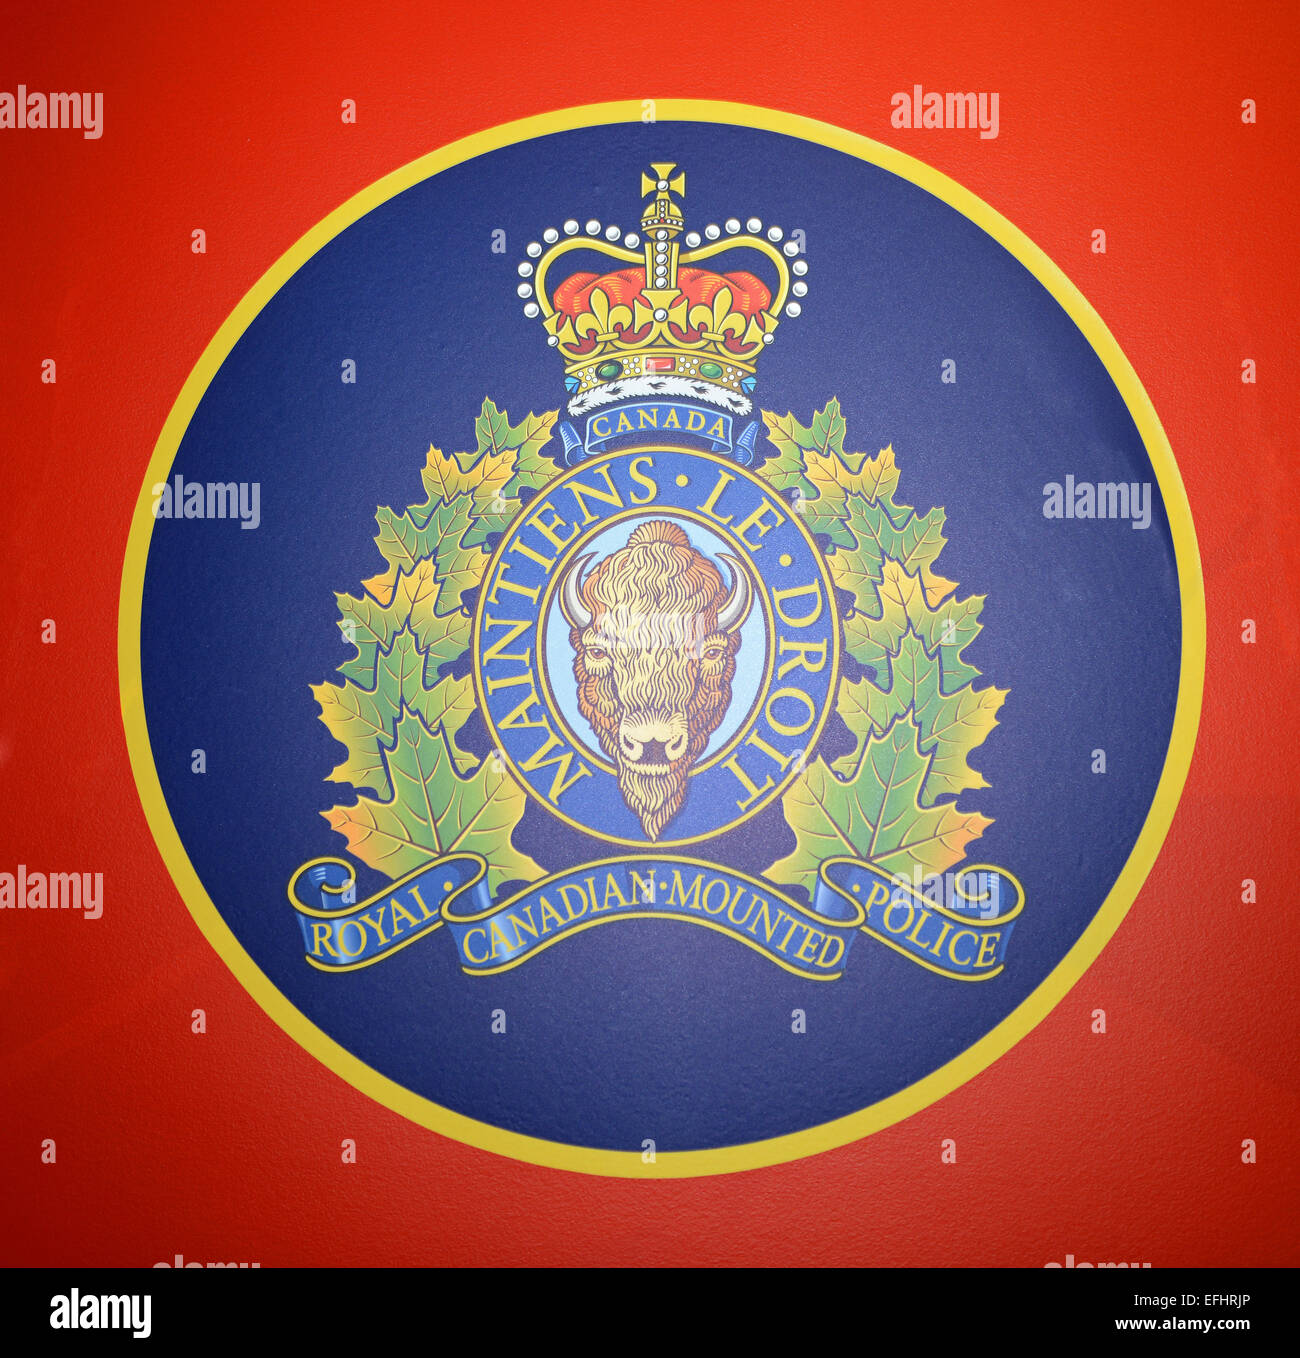 royal canadian mounted police badge logo rcmp heritage centre in